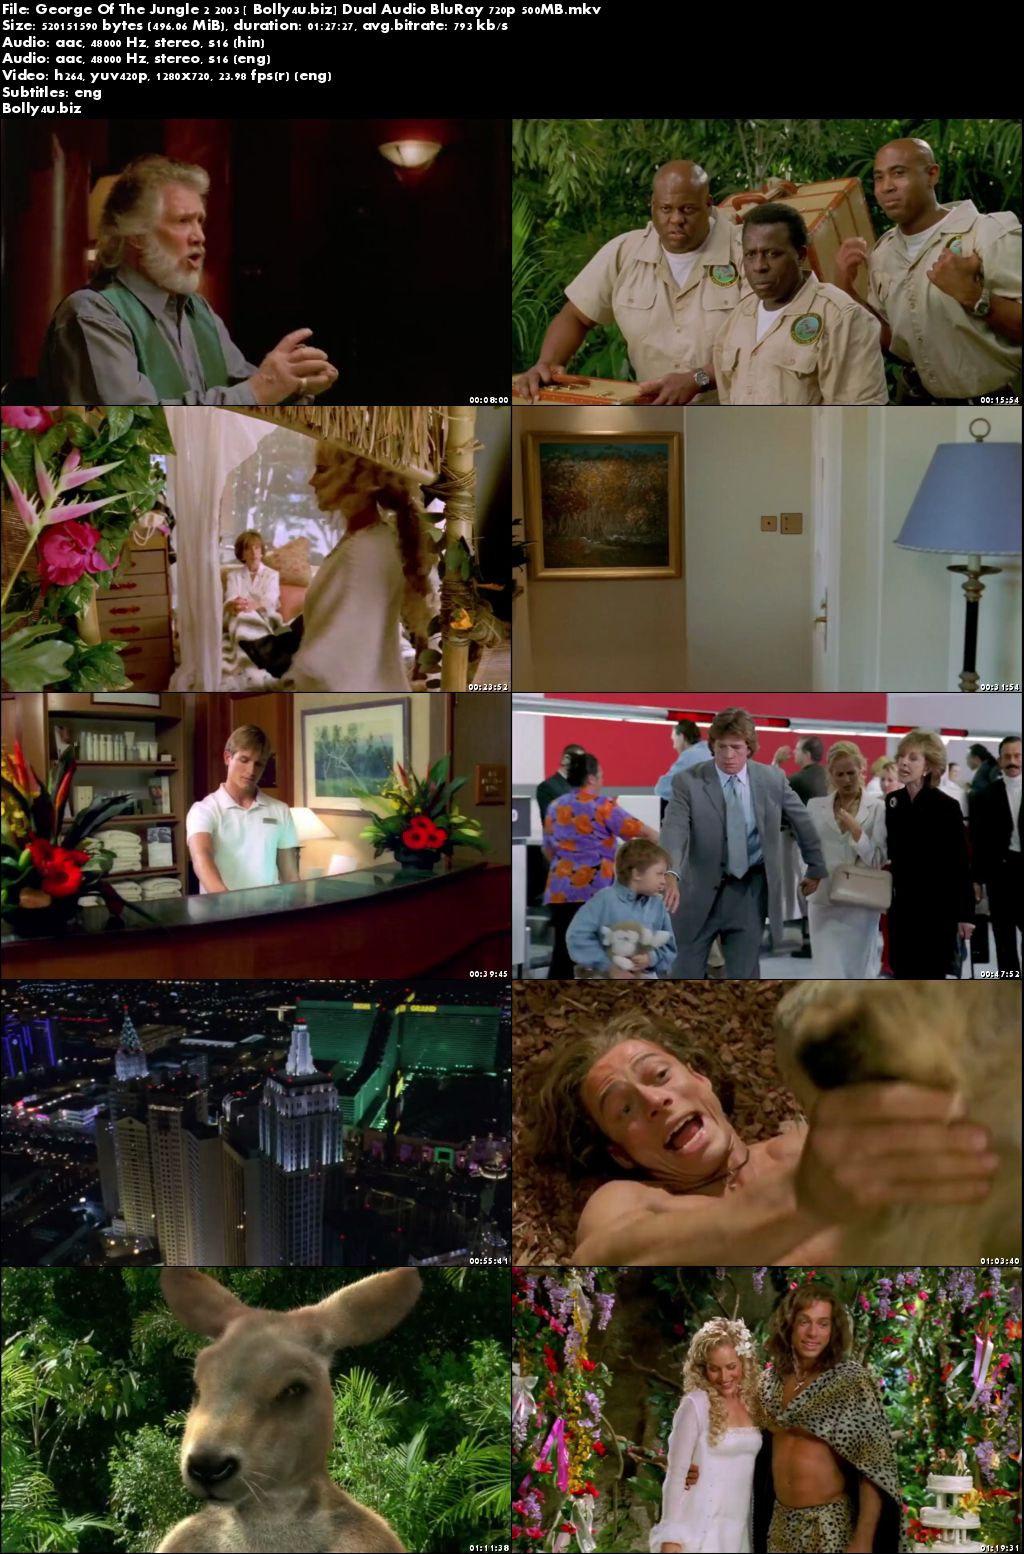 George Of The Jungle 2 2003 BRRip 500Mb Hindi Dual Audio 720p Download